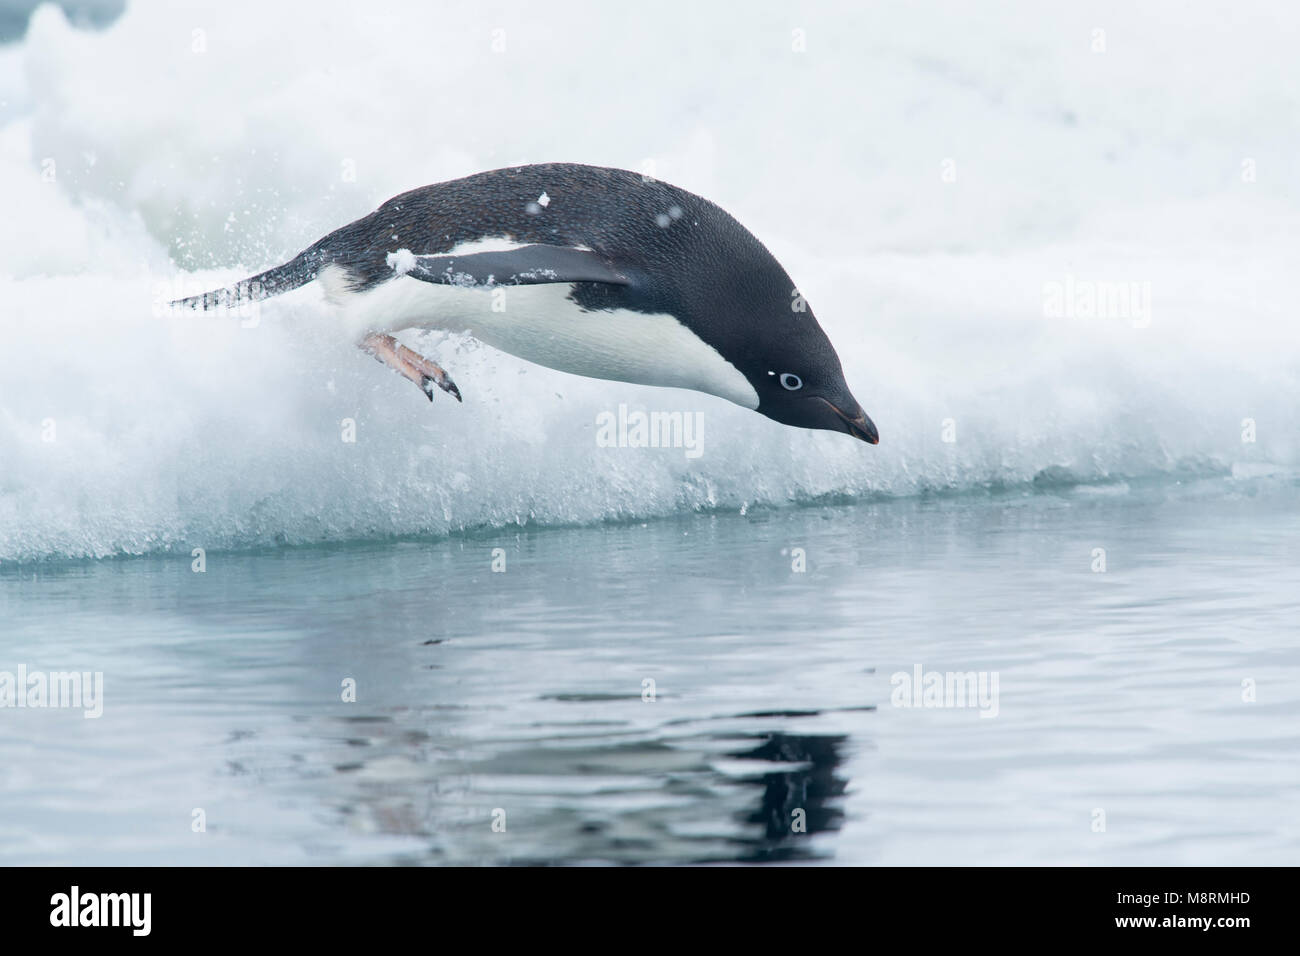 An Adelie penguin dives into the ocean from the top of an iceberg, as snow falls in Antarctica. - Stock Image